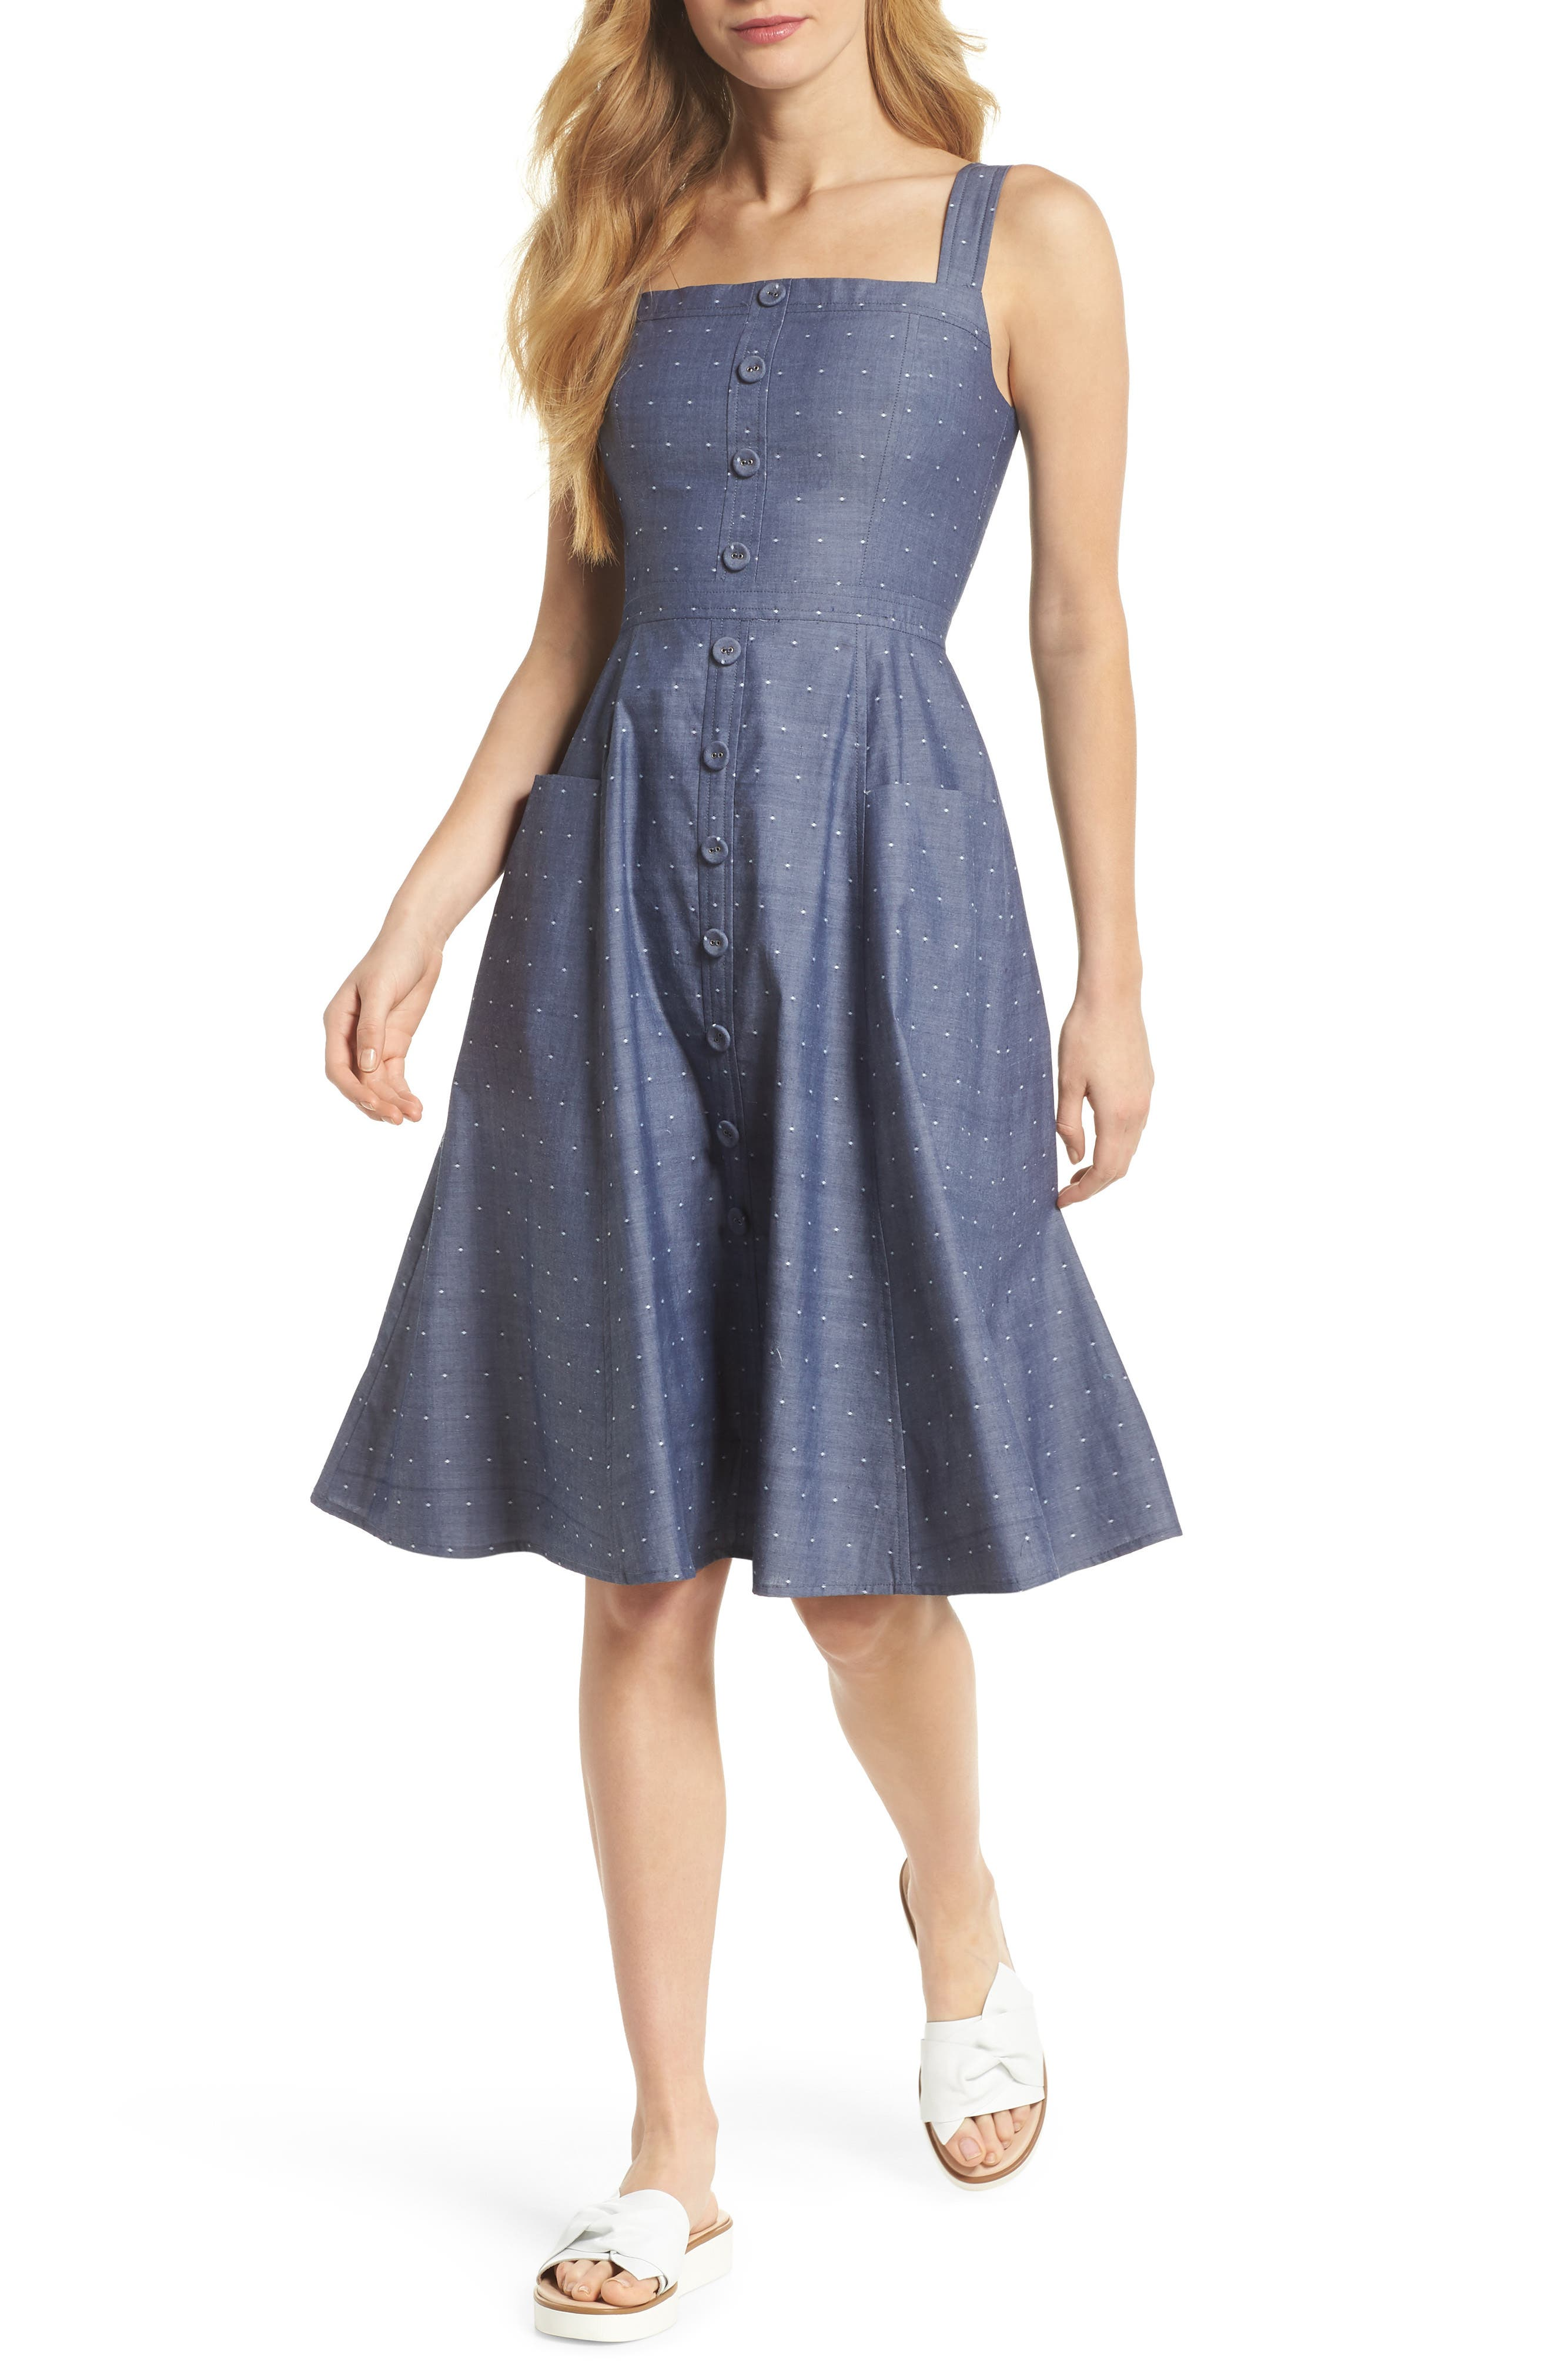 Alternate Image 1 Selected - Gal Meets Glam Collection Riley Dot Chambray Fit & Flare Sundress